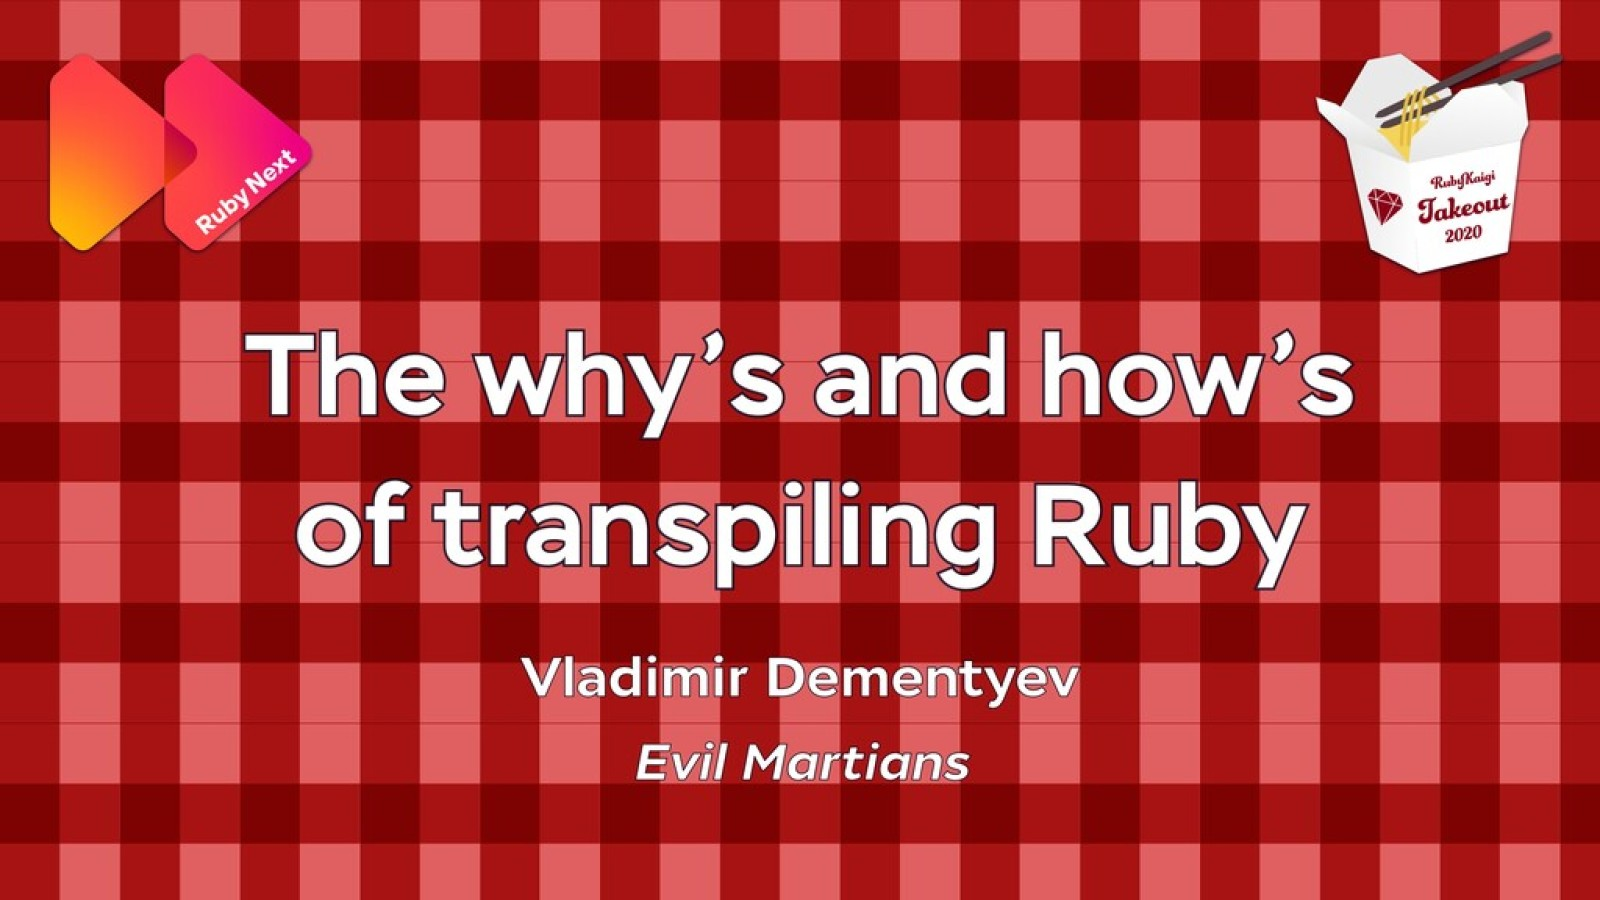 The why's and how's of transpiling Ruby